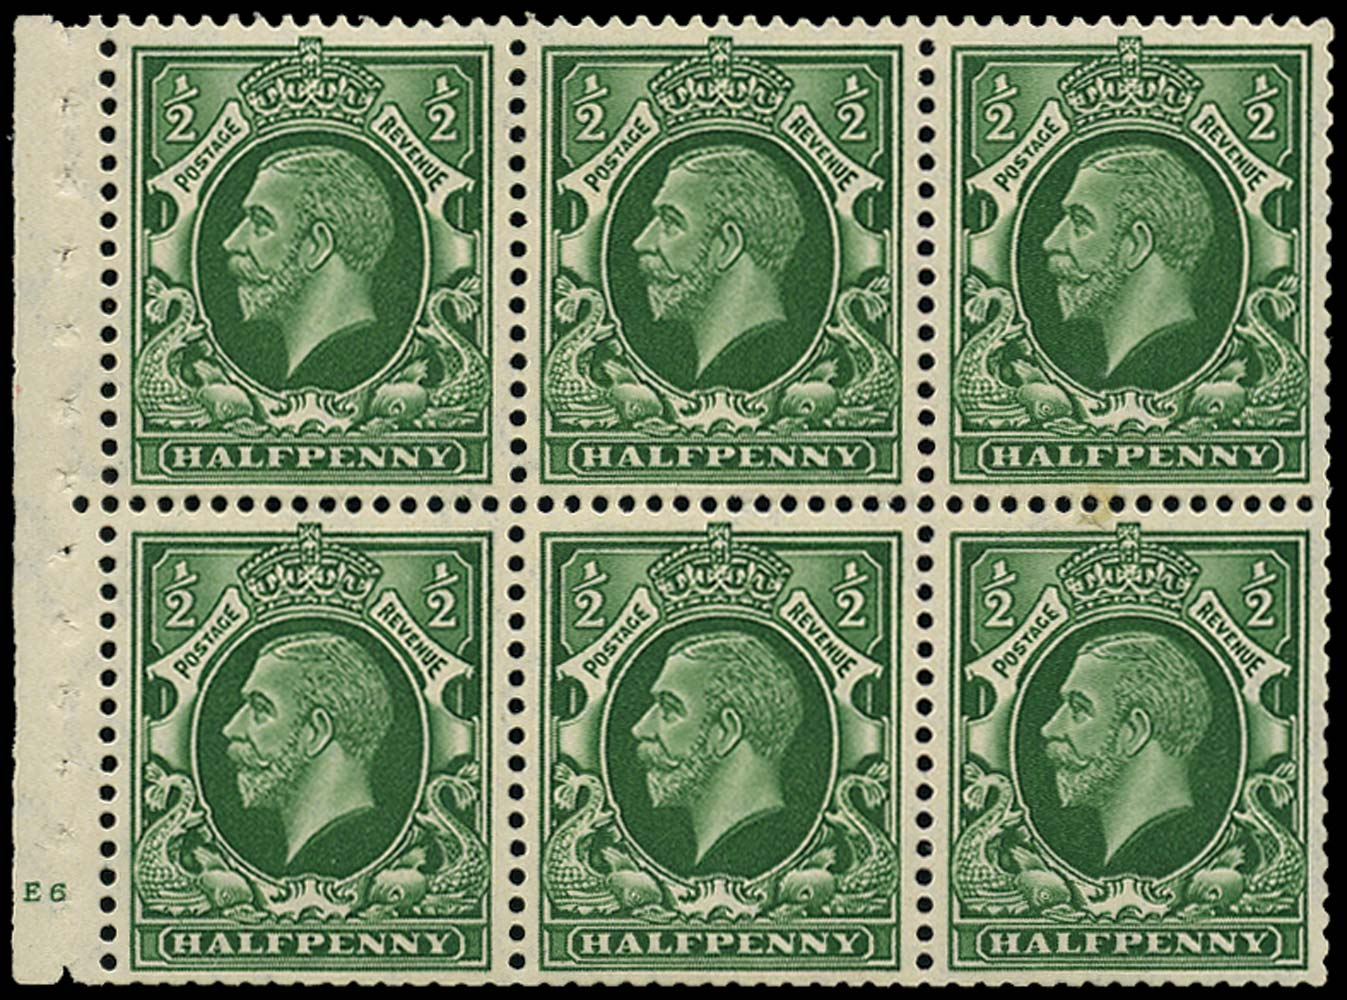 GB 1935  SG439c Booklet pane (small format) cyl.E6